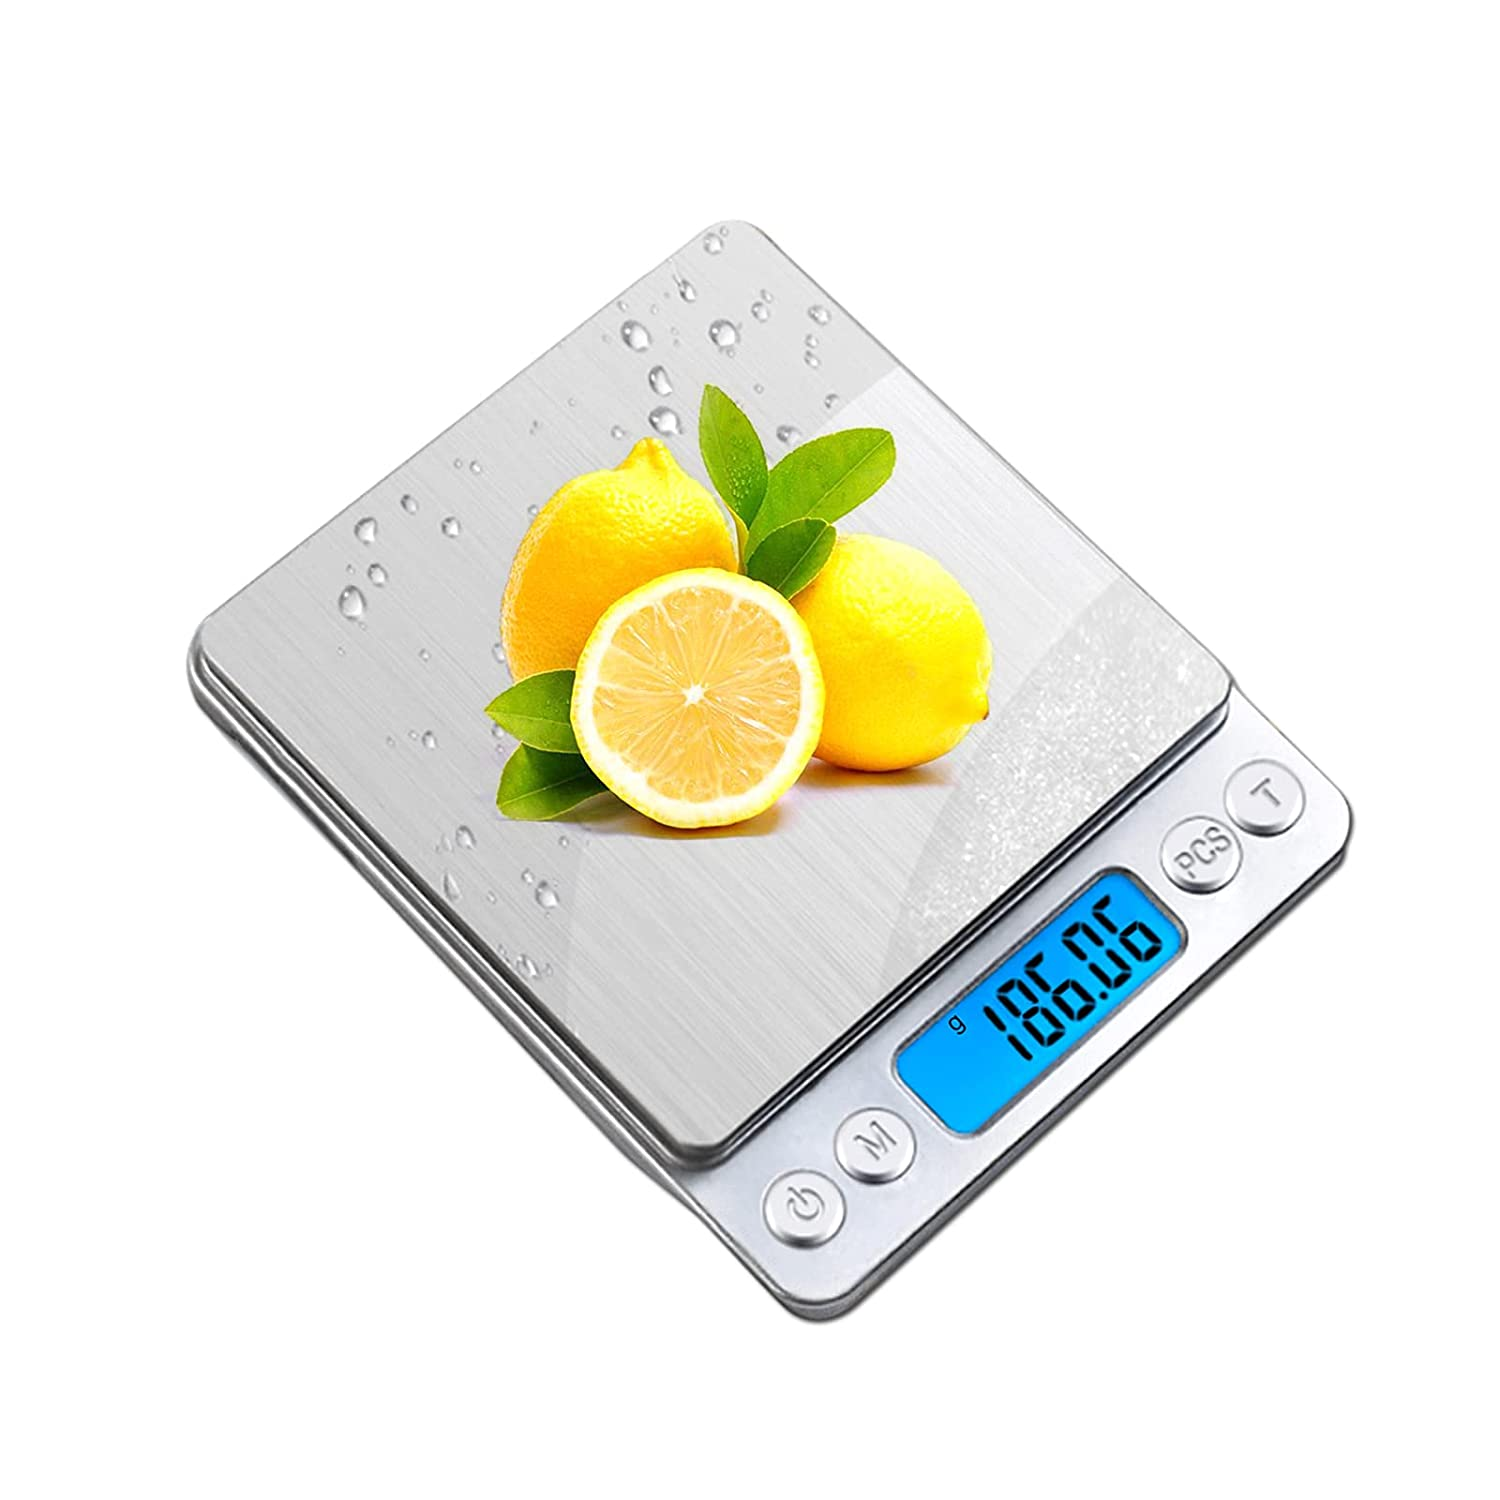 Digital Food-Kitchen Scale Weight Grams - oz for Cooking Baking,3kg/0.1g Mini Food Electronic Scale,High Precise,Coffee Scales Grams Mutritional Calculator,Back-Lit LCD Display